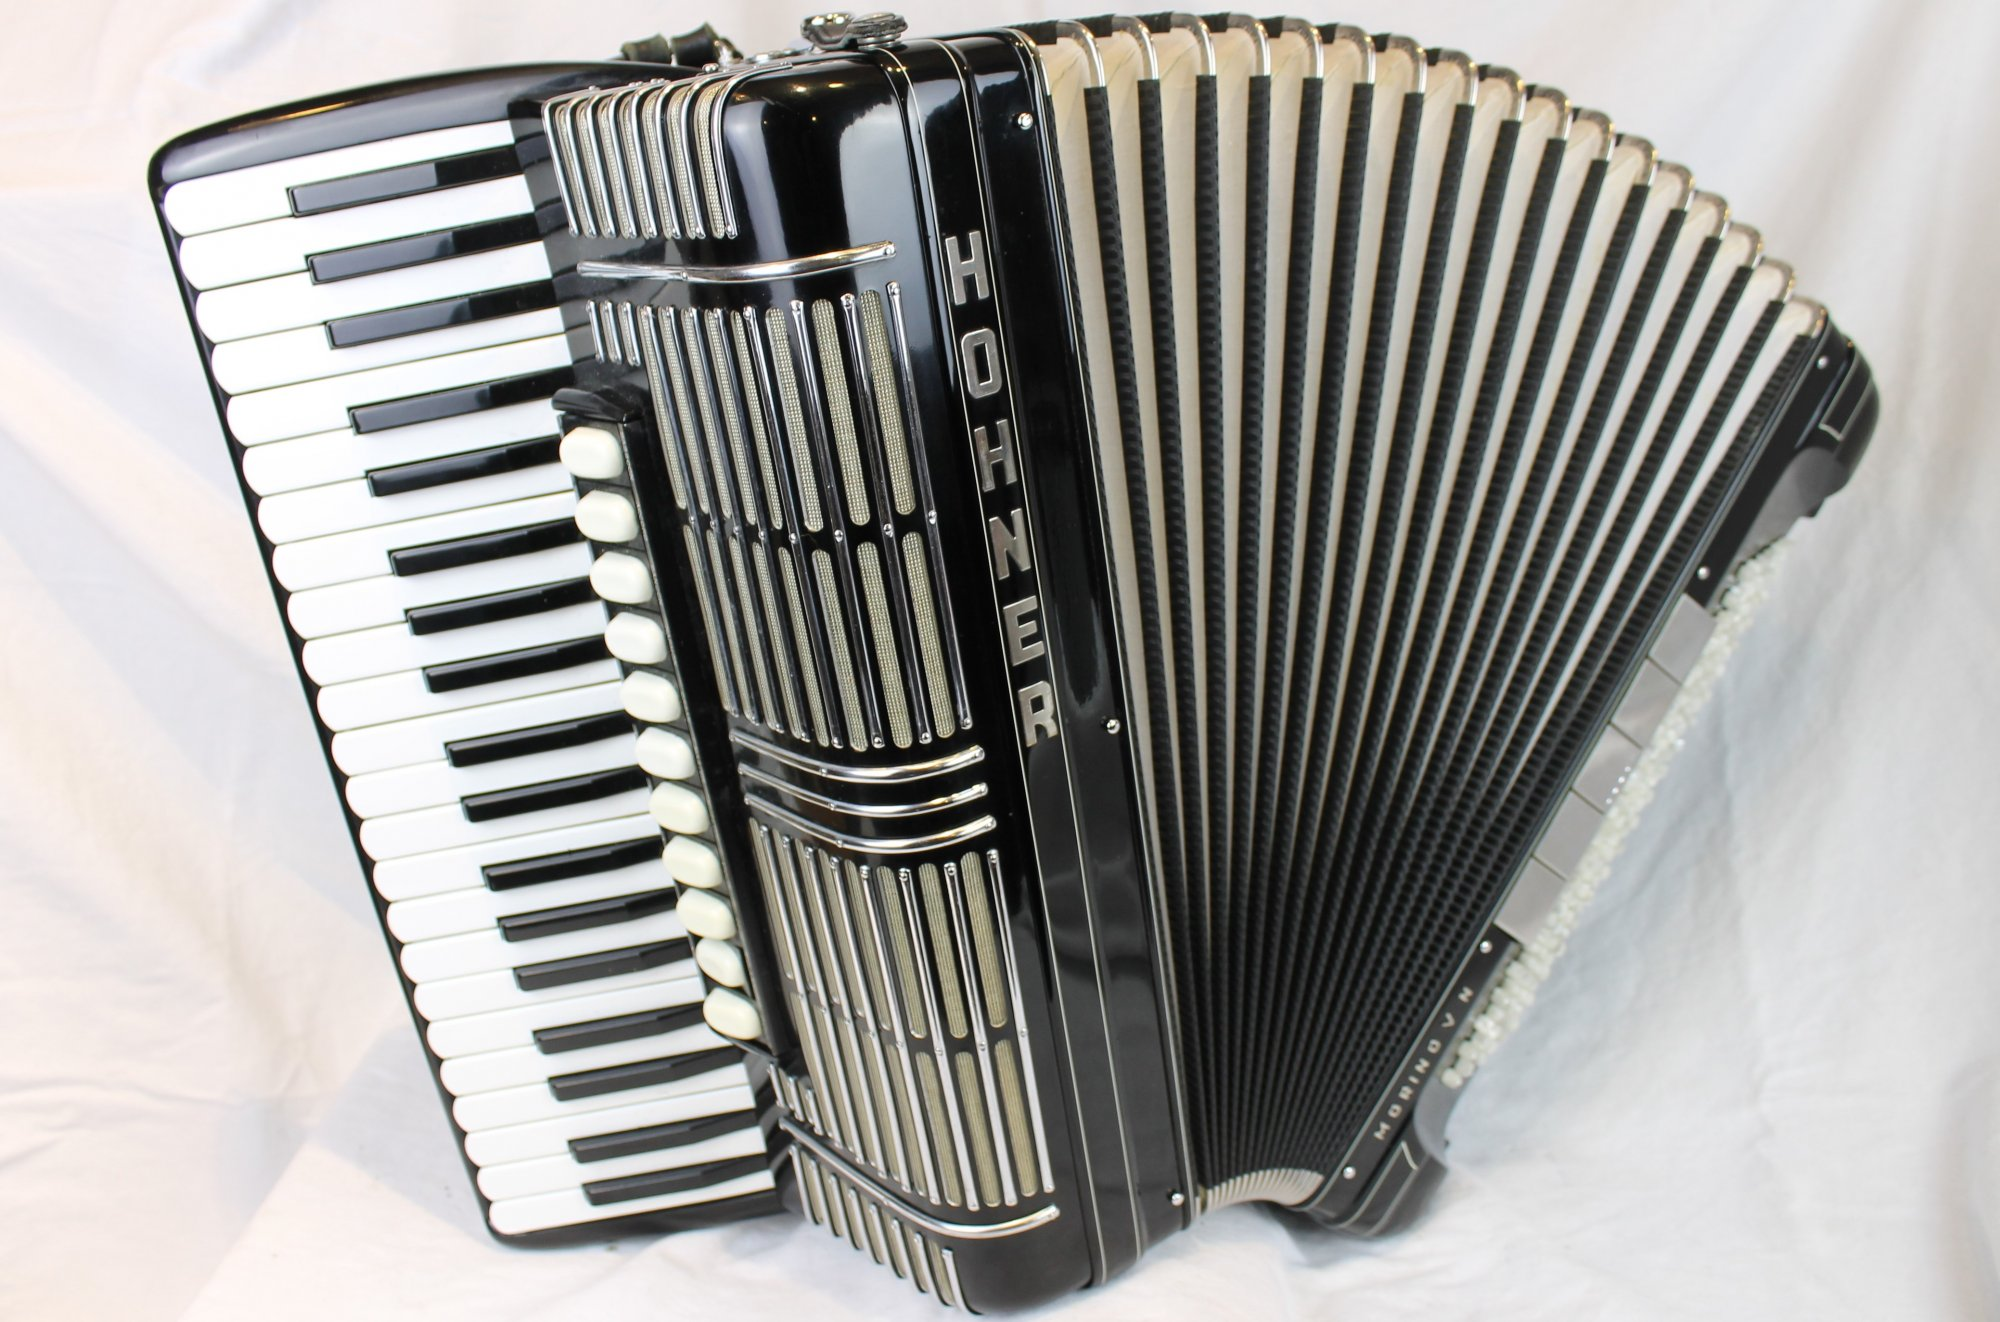 3916 - Black Hohner Morino V N Piano Accordion LMMMH41 120